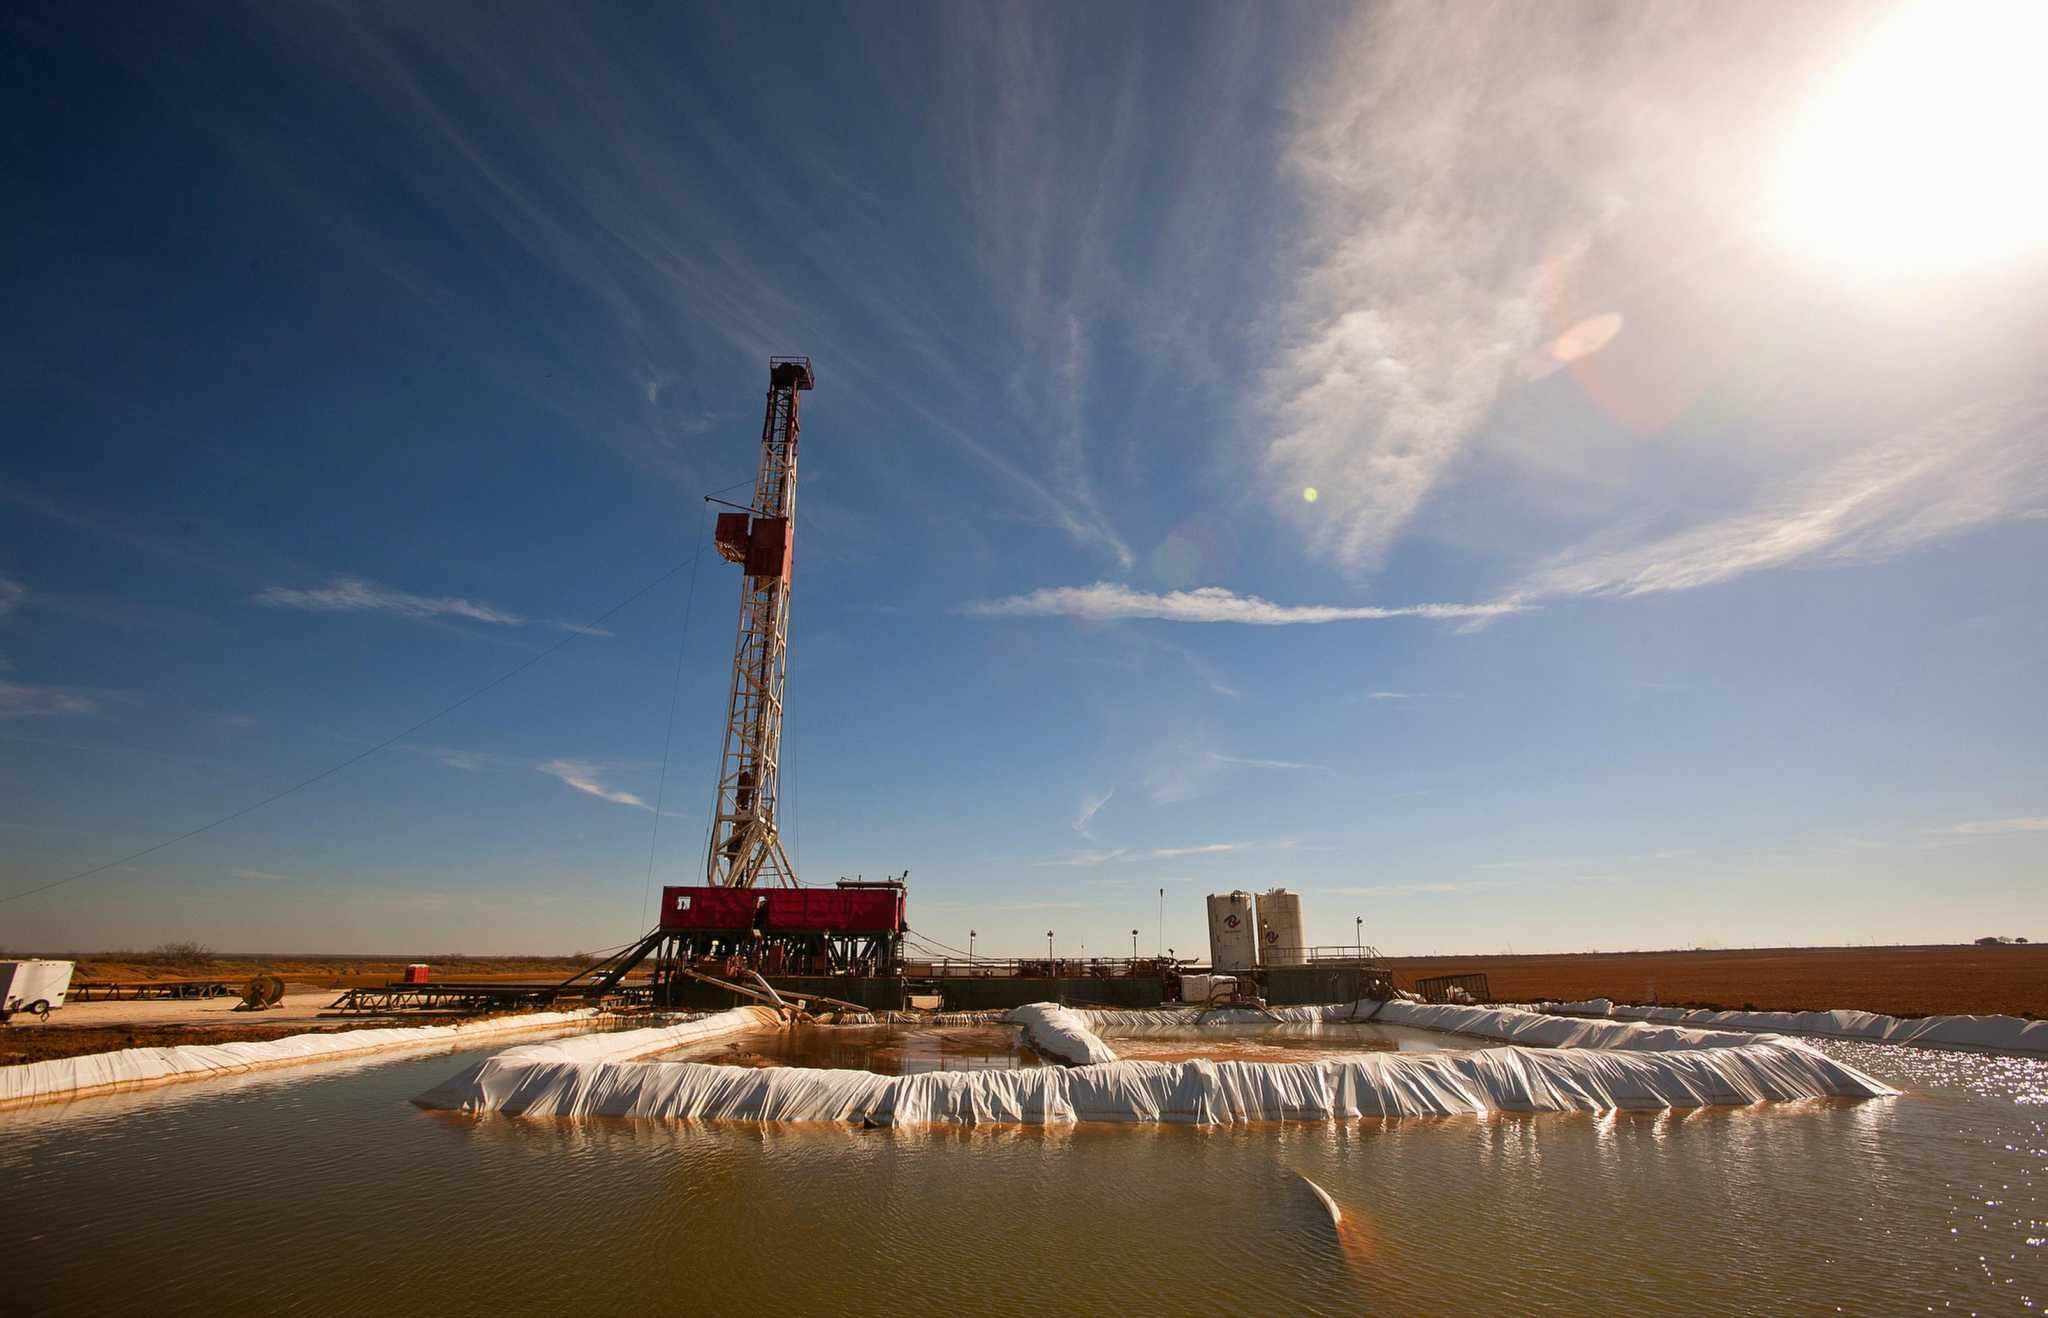 USGS: Permian's Wolfcamp is largest potential oil and gas resource ever assessed